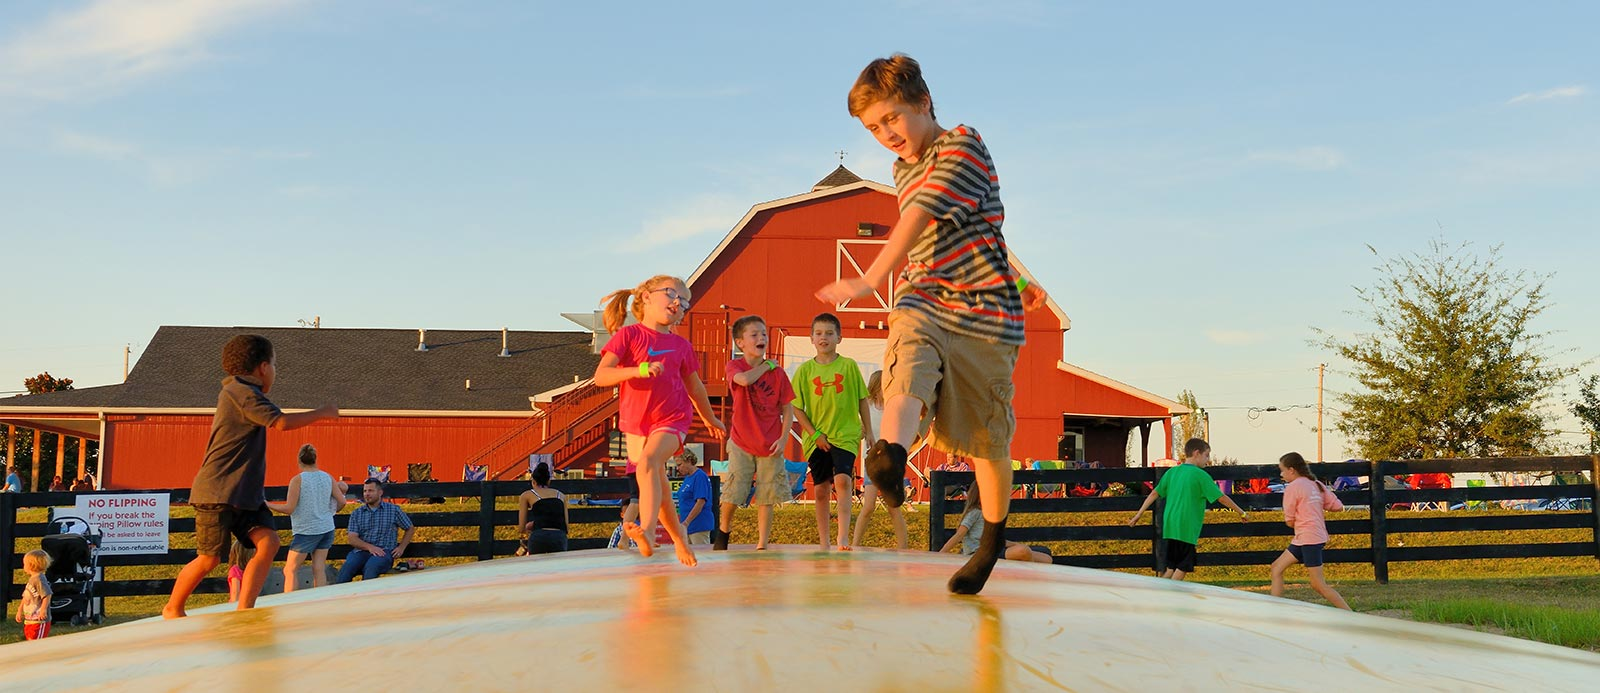 Kids jumping on an inflatable at Chaney's Dairy Barn in Bowling Green, KY